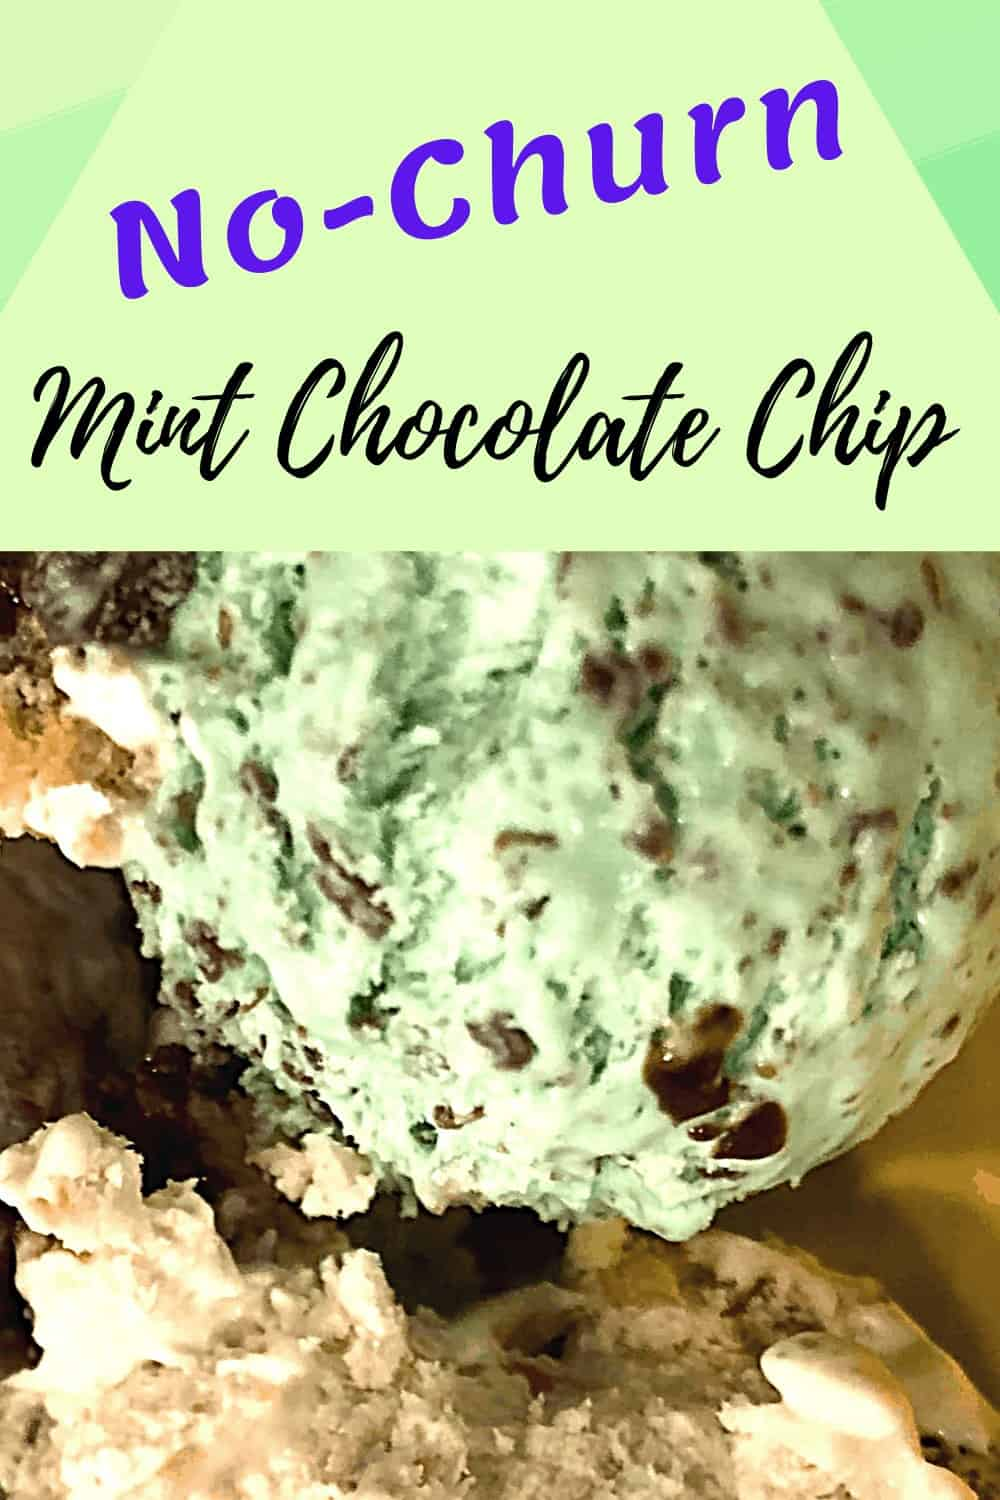 Mint Chocolate Chip Ice Cream with other flavors of ice cream in bowl